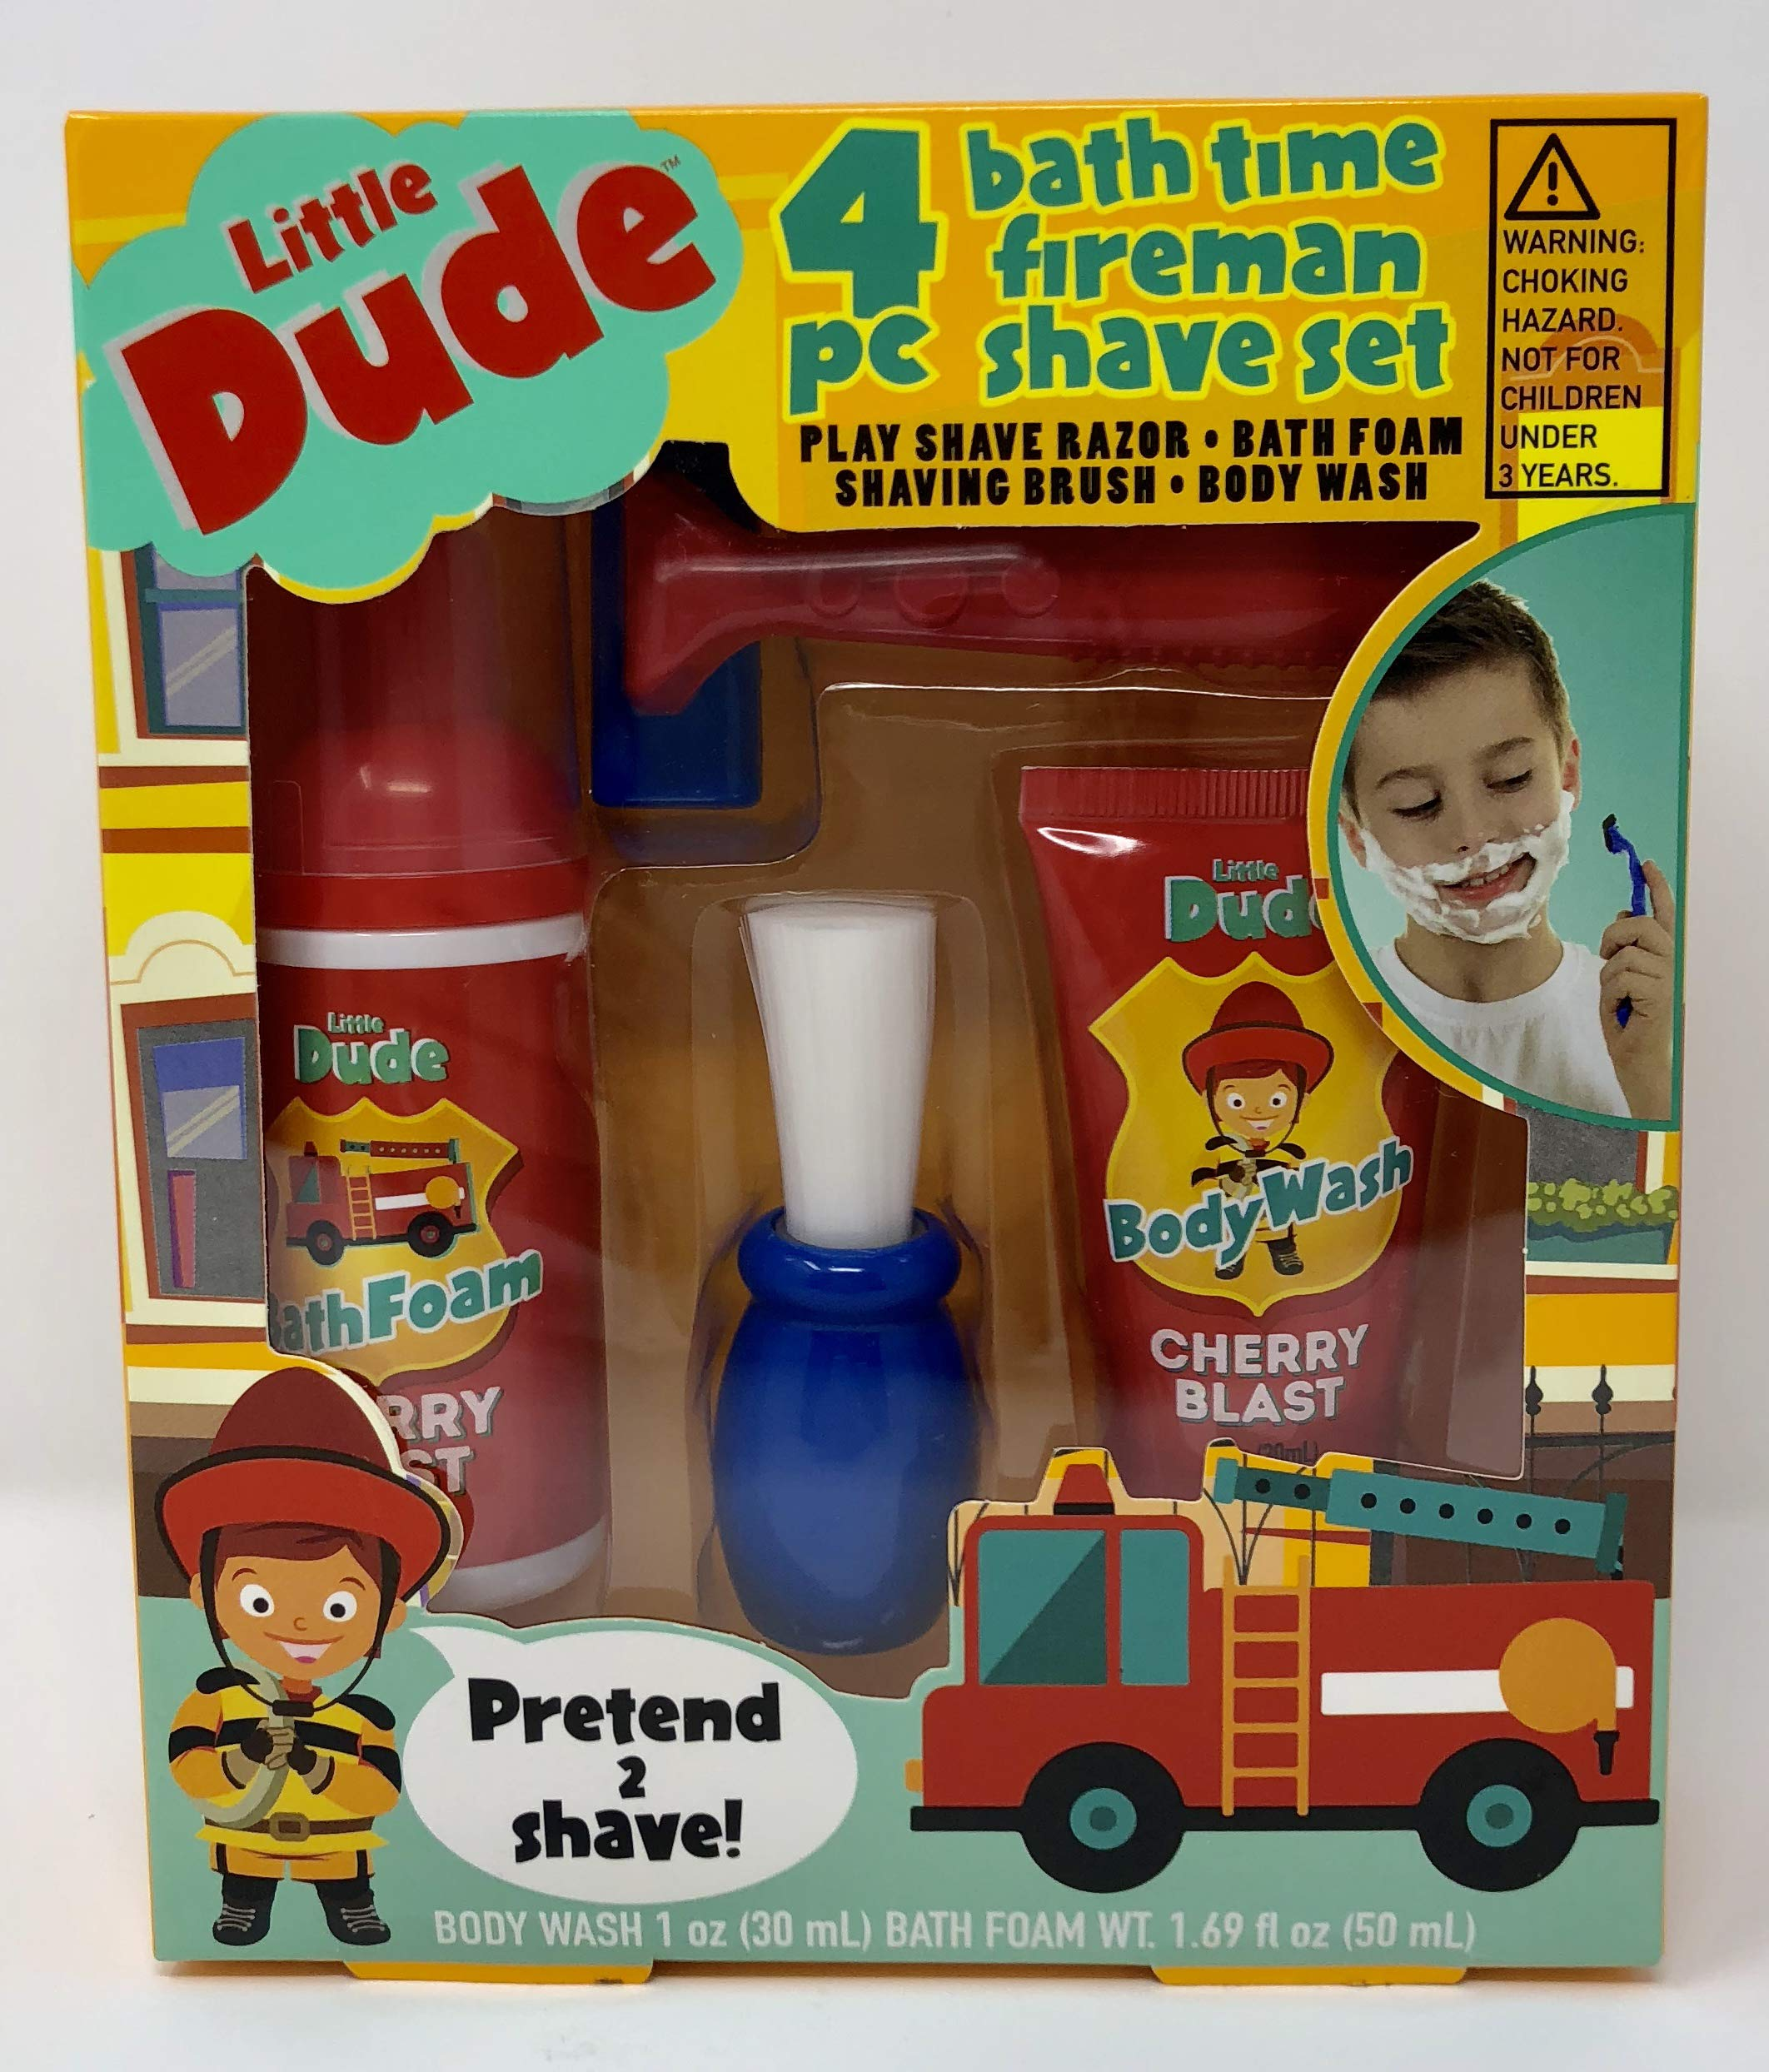 BCL  Kids Pretend Shave kit for Bath time Fun. Fireman Theme, Complete with Pretend Razor, Bath Foam, Shaving Brush, and Body wash.